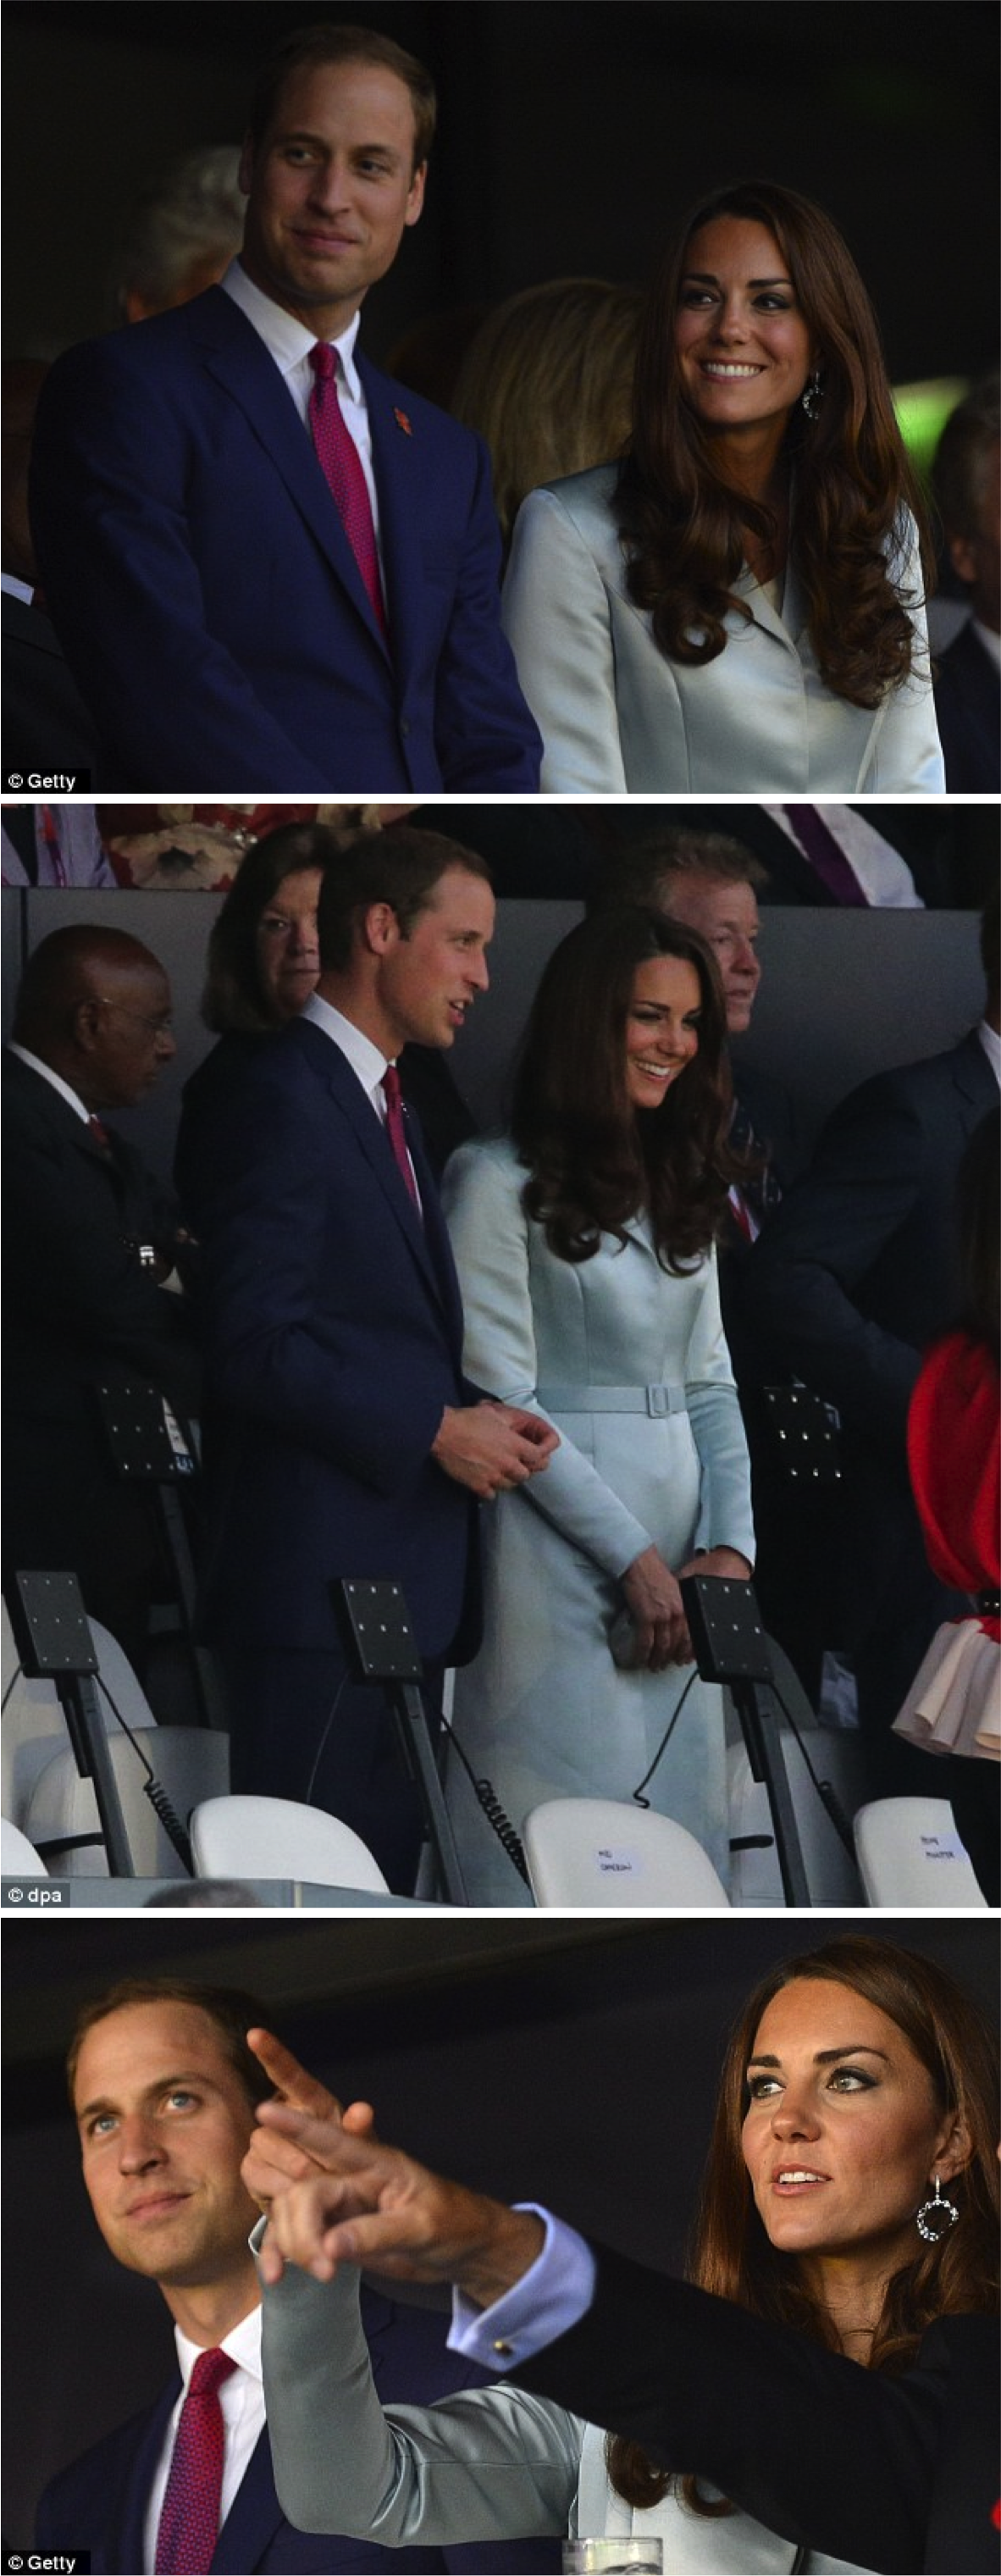 O look da Kate Middleton nas Olimpíadas!